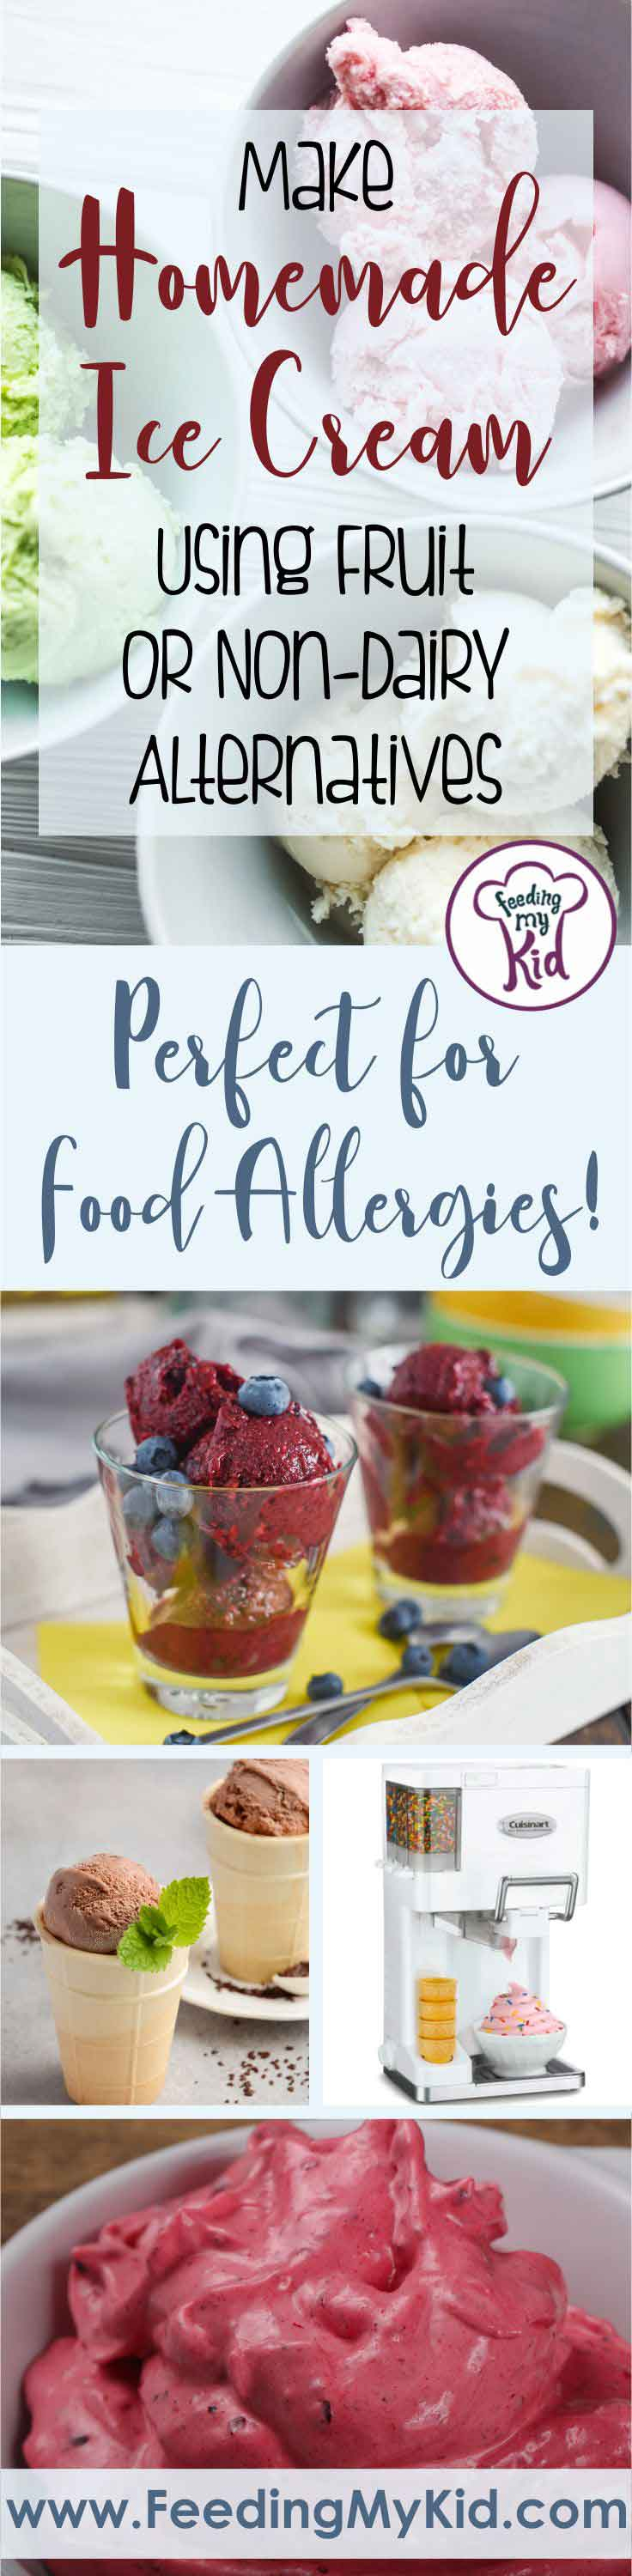 Homemade ice cream is a sure way to avoid ingredients that might spur an allergy attack. Use any fruit and dairy-free alternatives that you love!